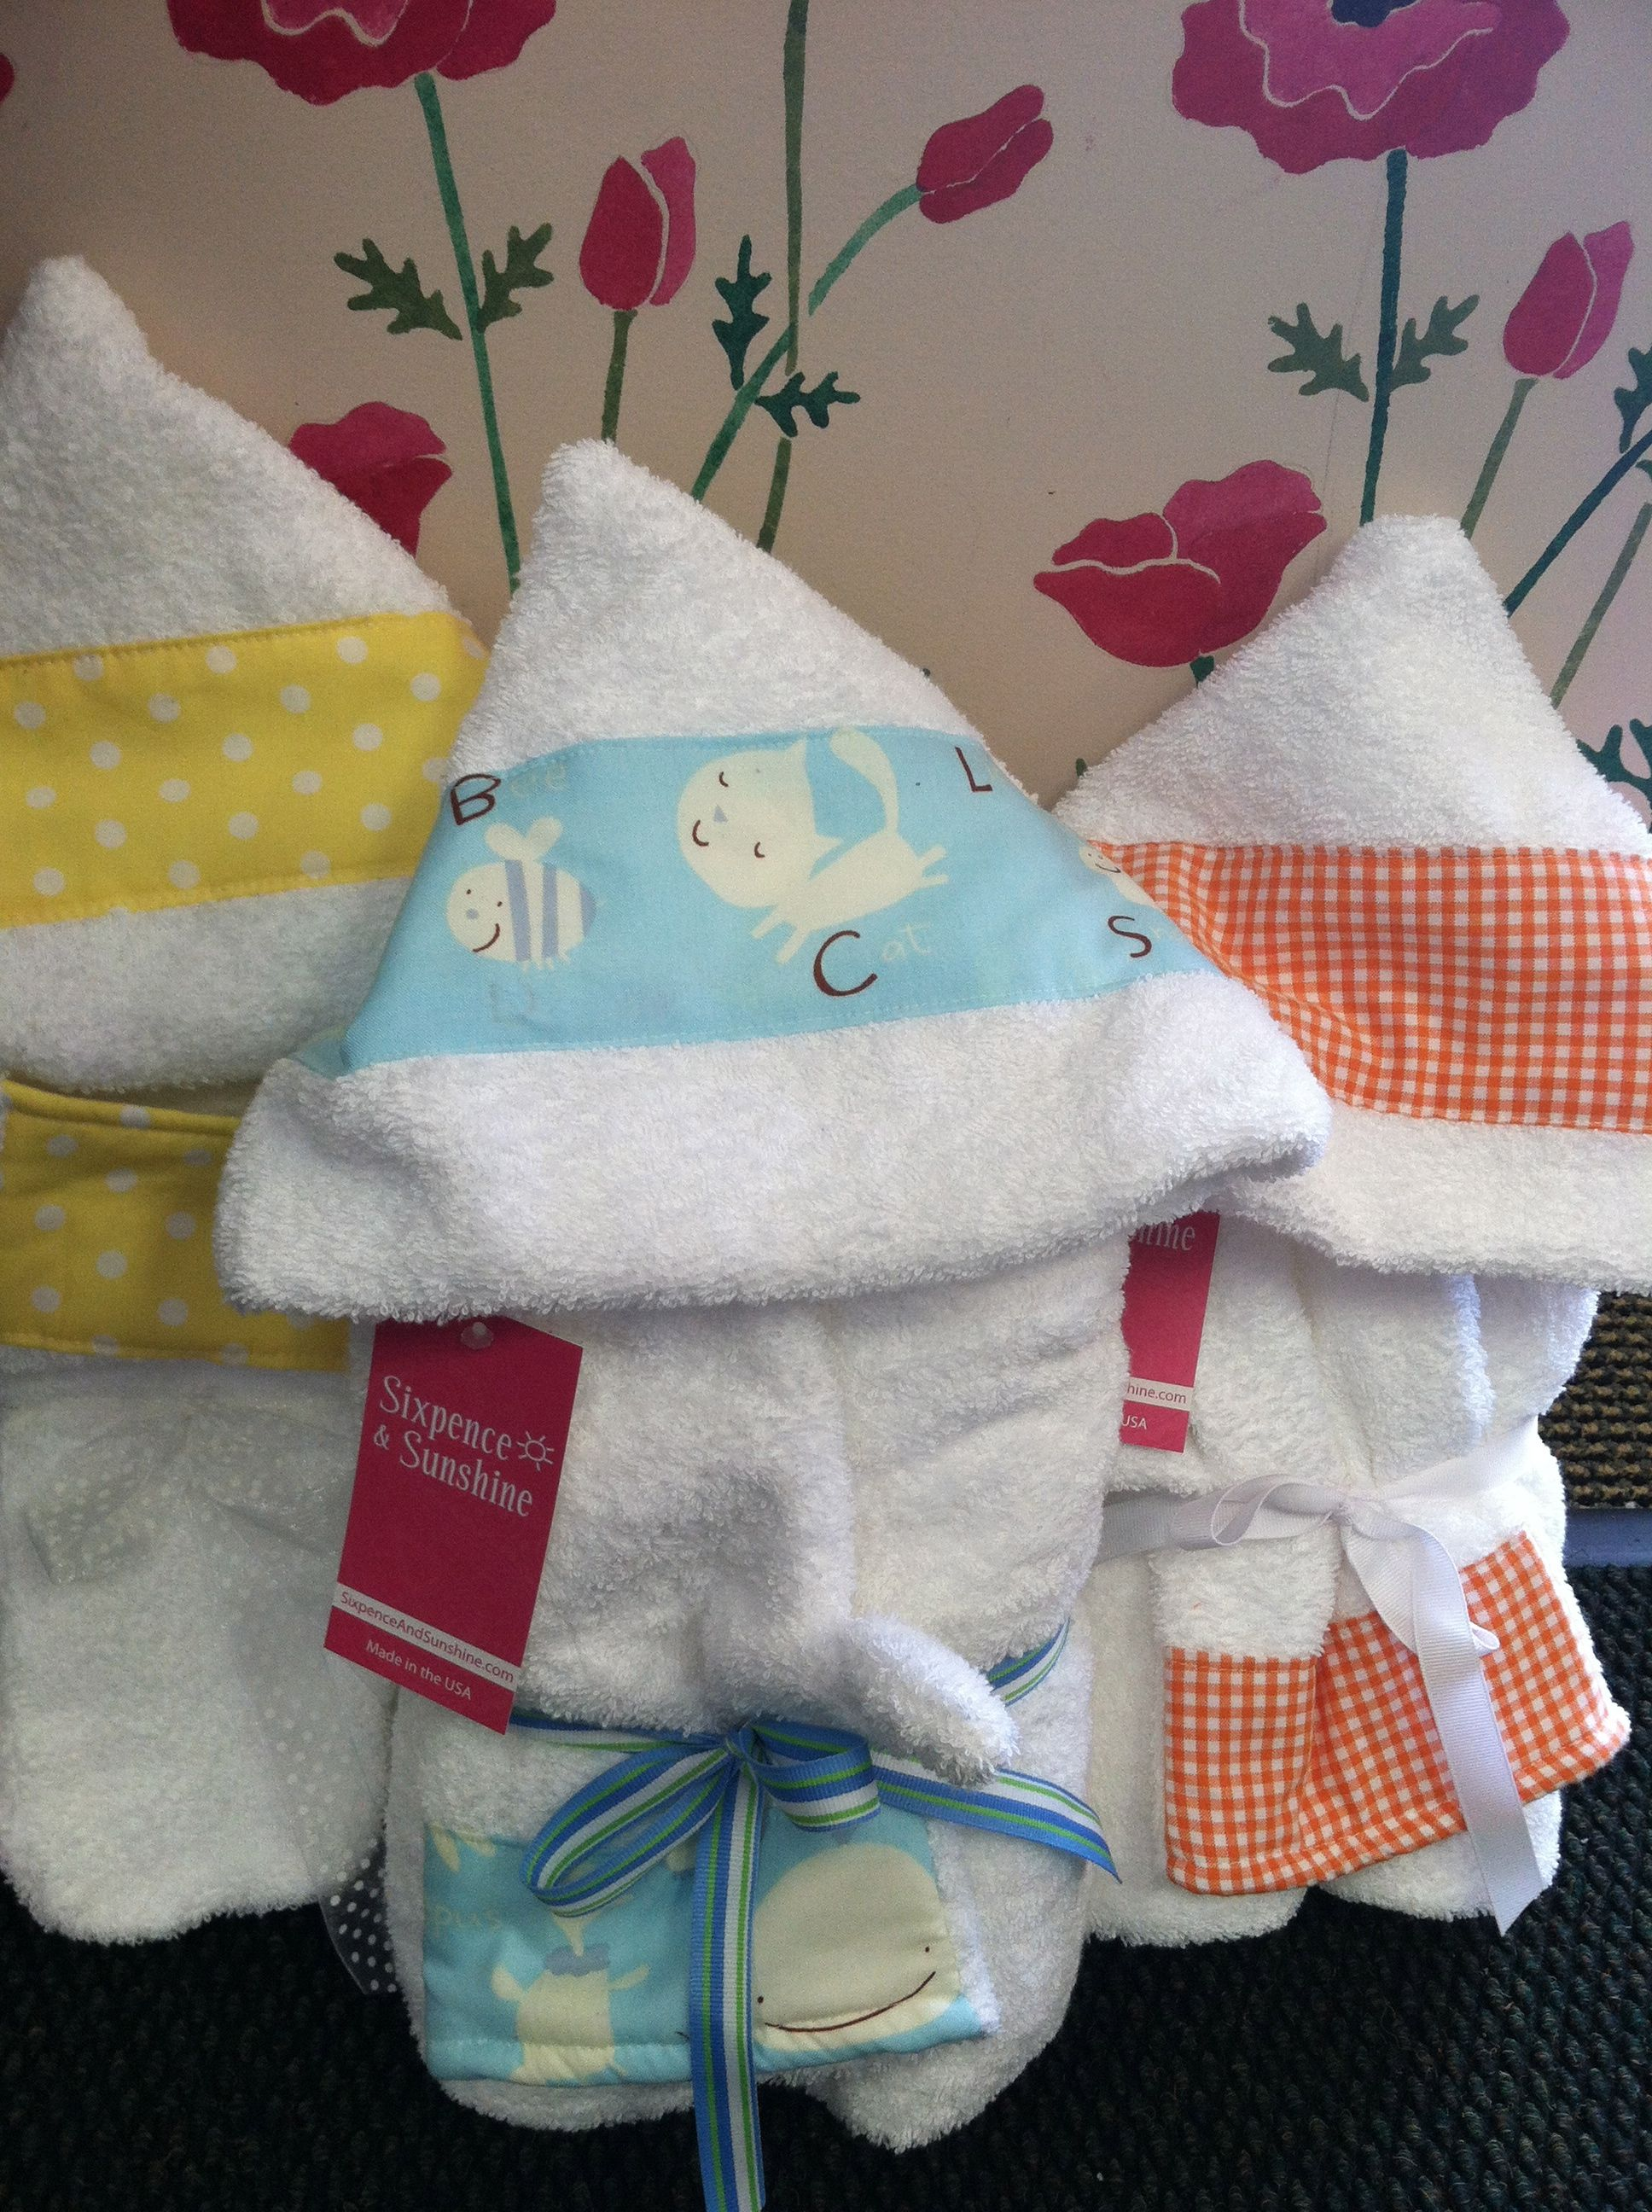 These Are Our Custom Made Full Size Hooded Bath Towels Made